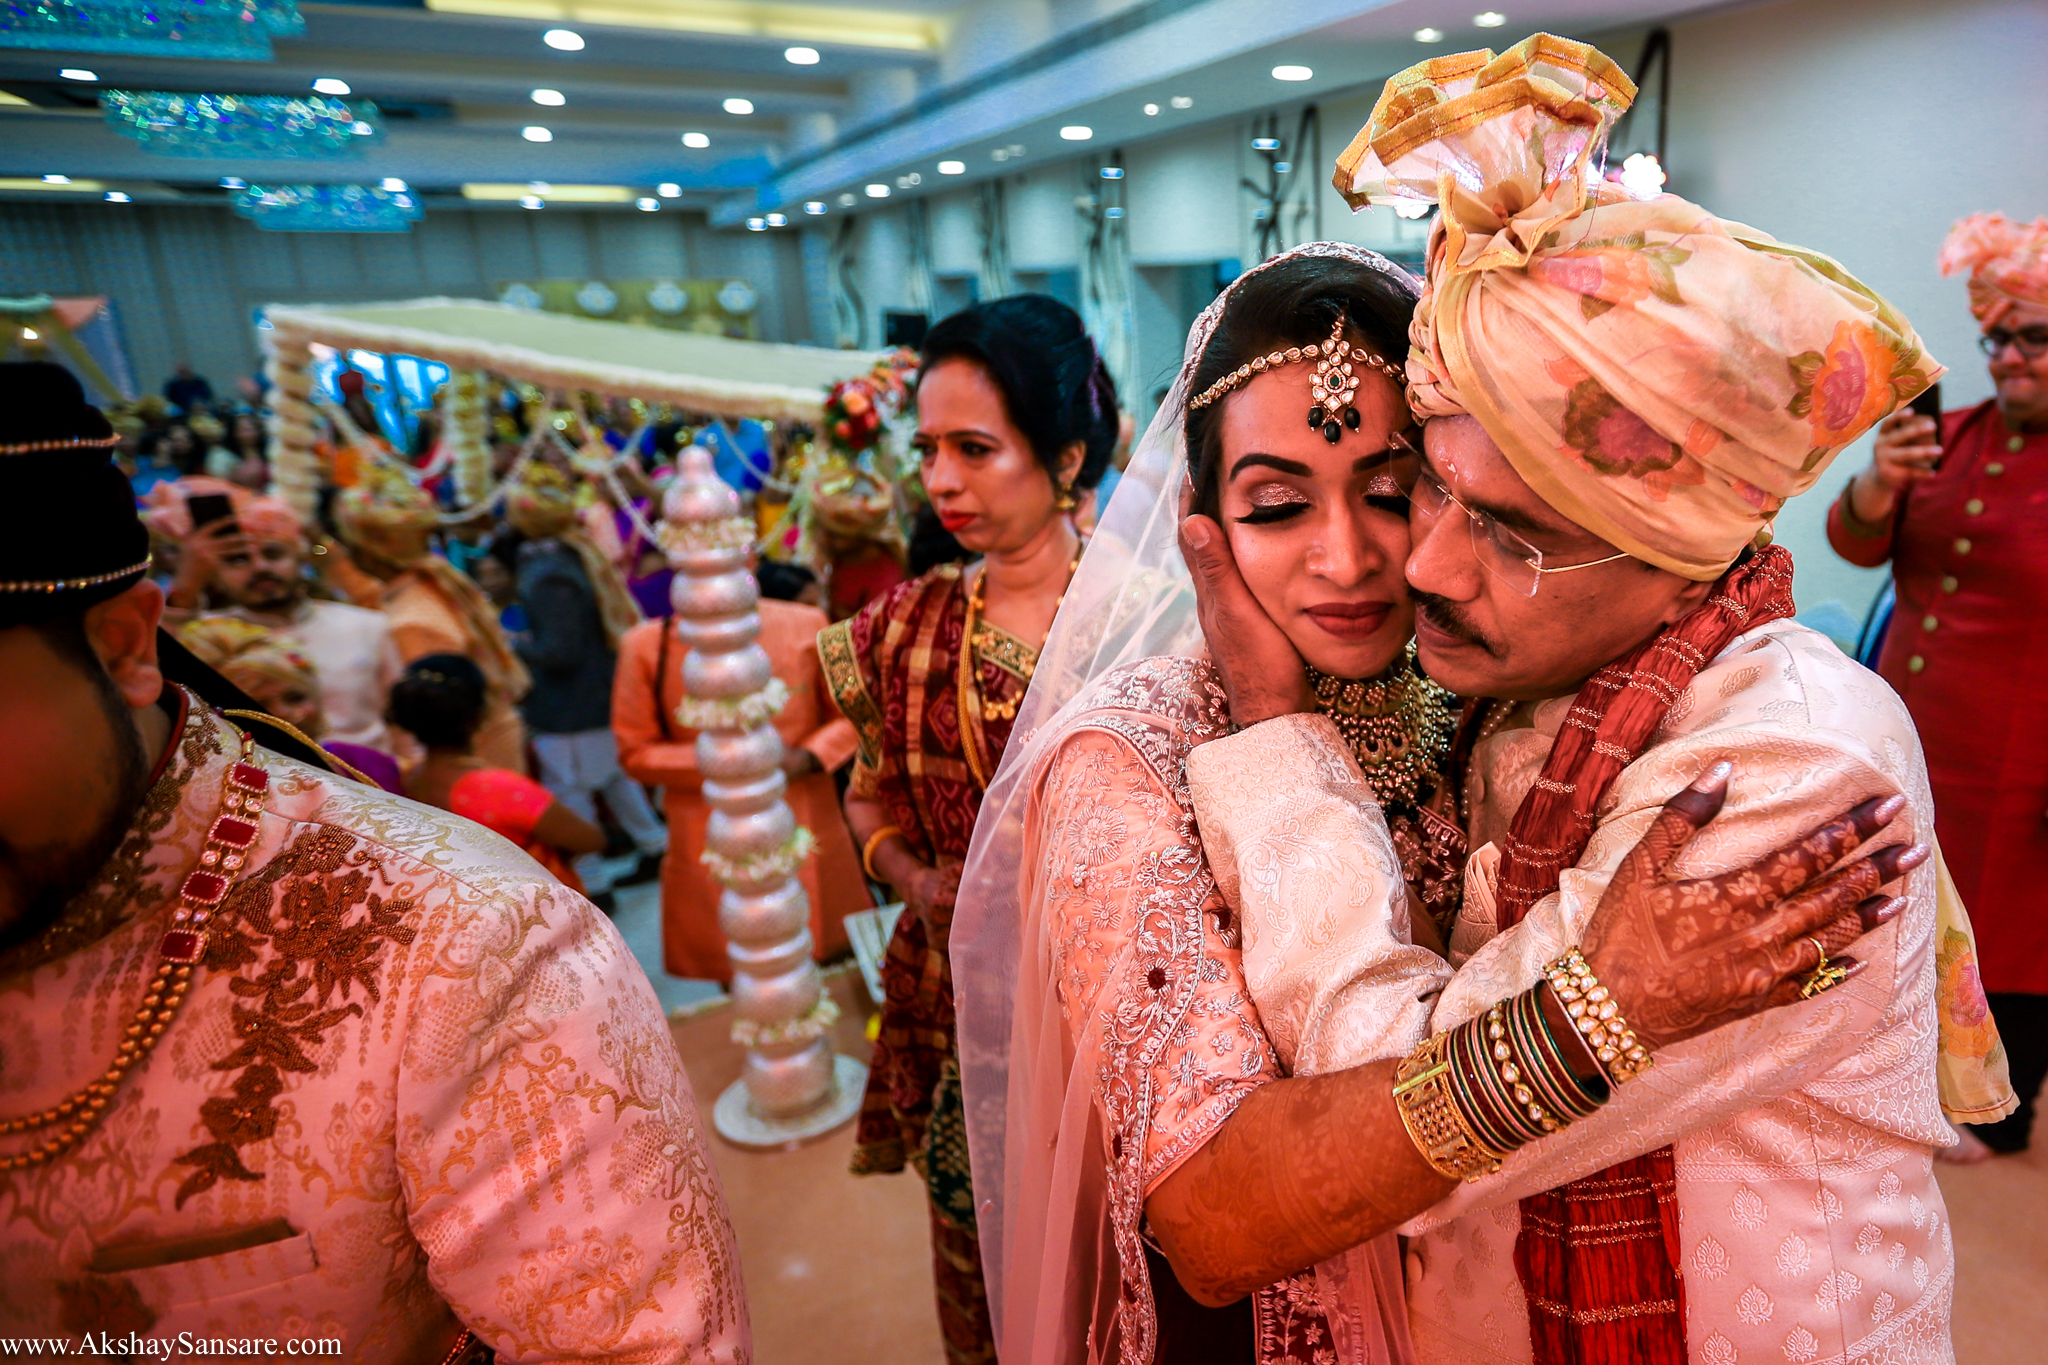 Nupur & Rohan wedding Akshay Sansare Photography best wedding photographer in mumbai India Candid(48).jpg